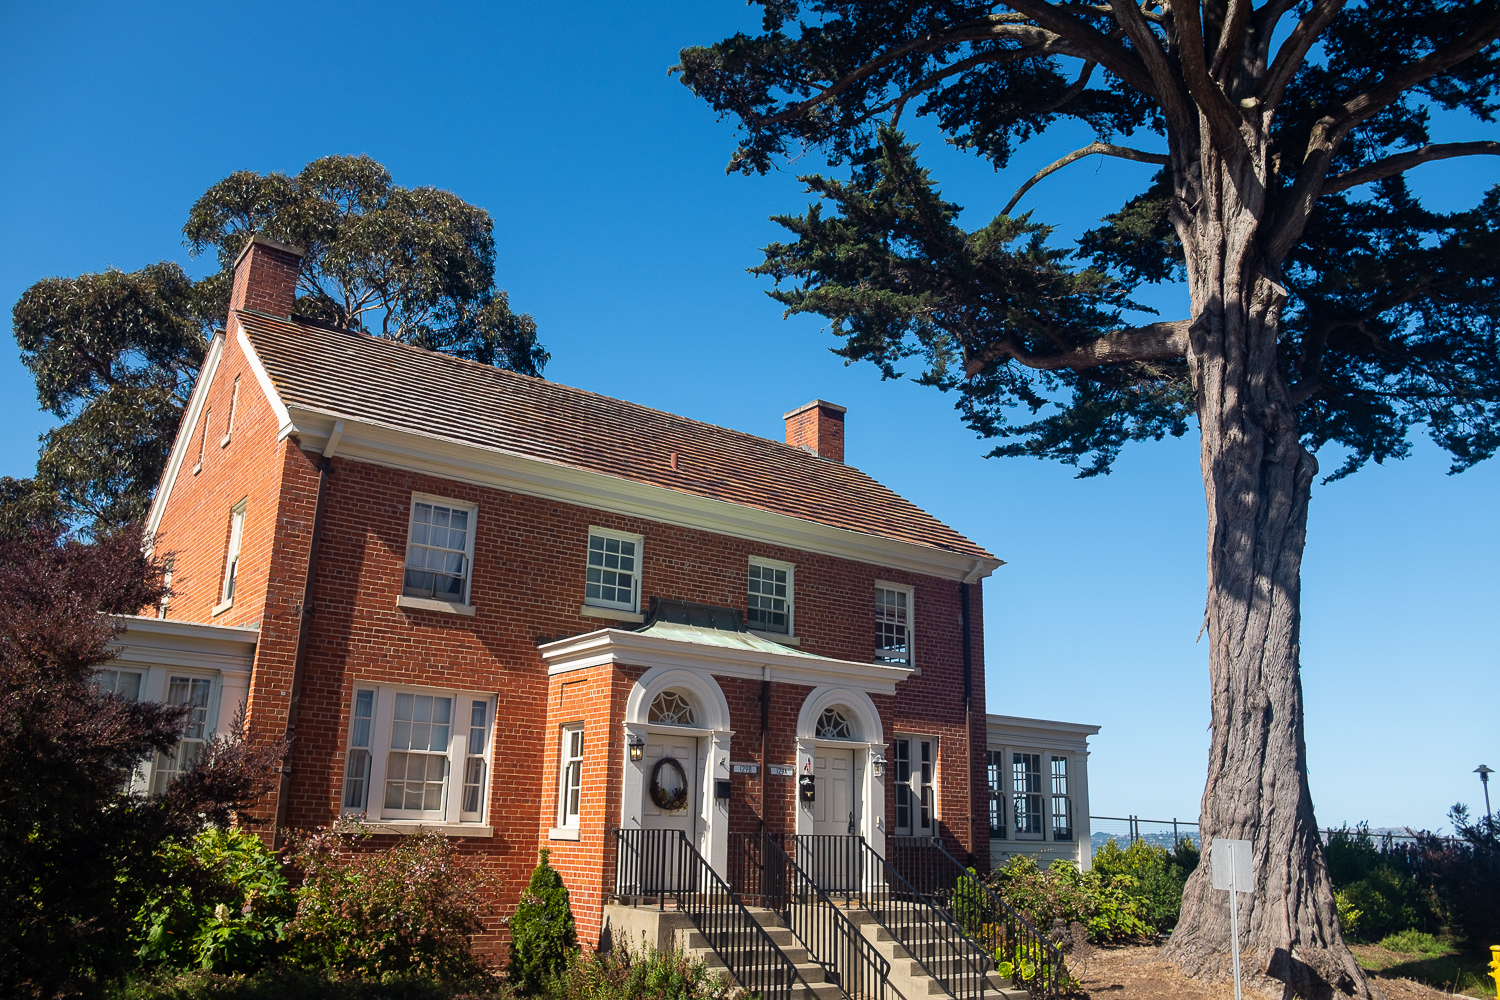 We toured inside the Presidio's stunning former military homes